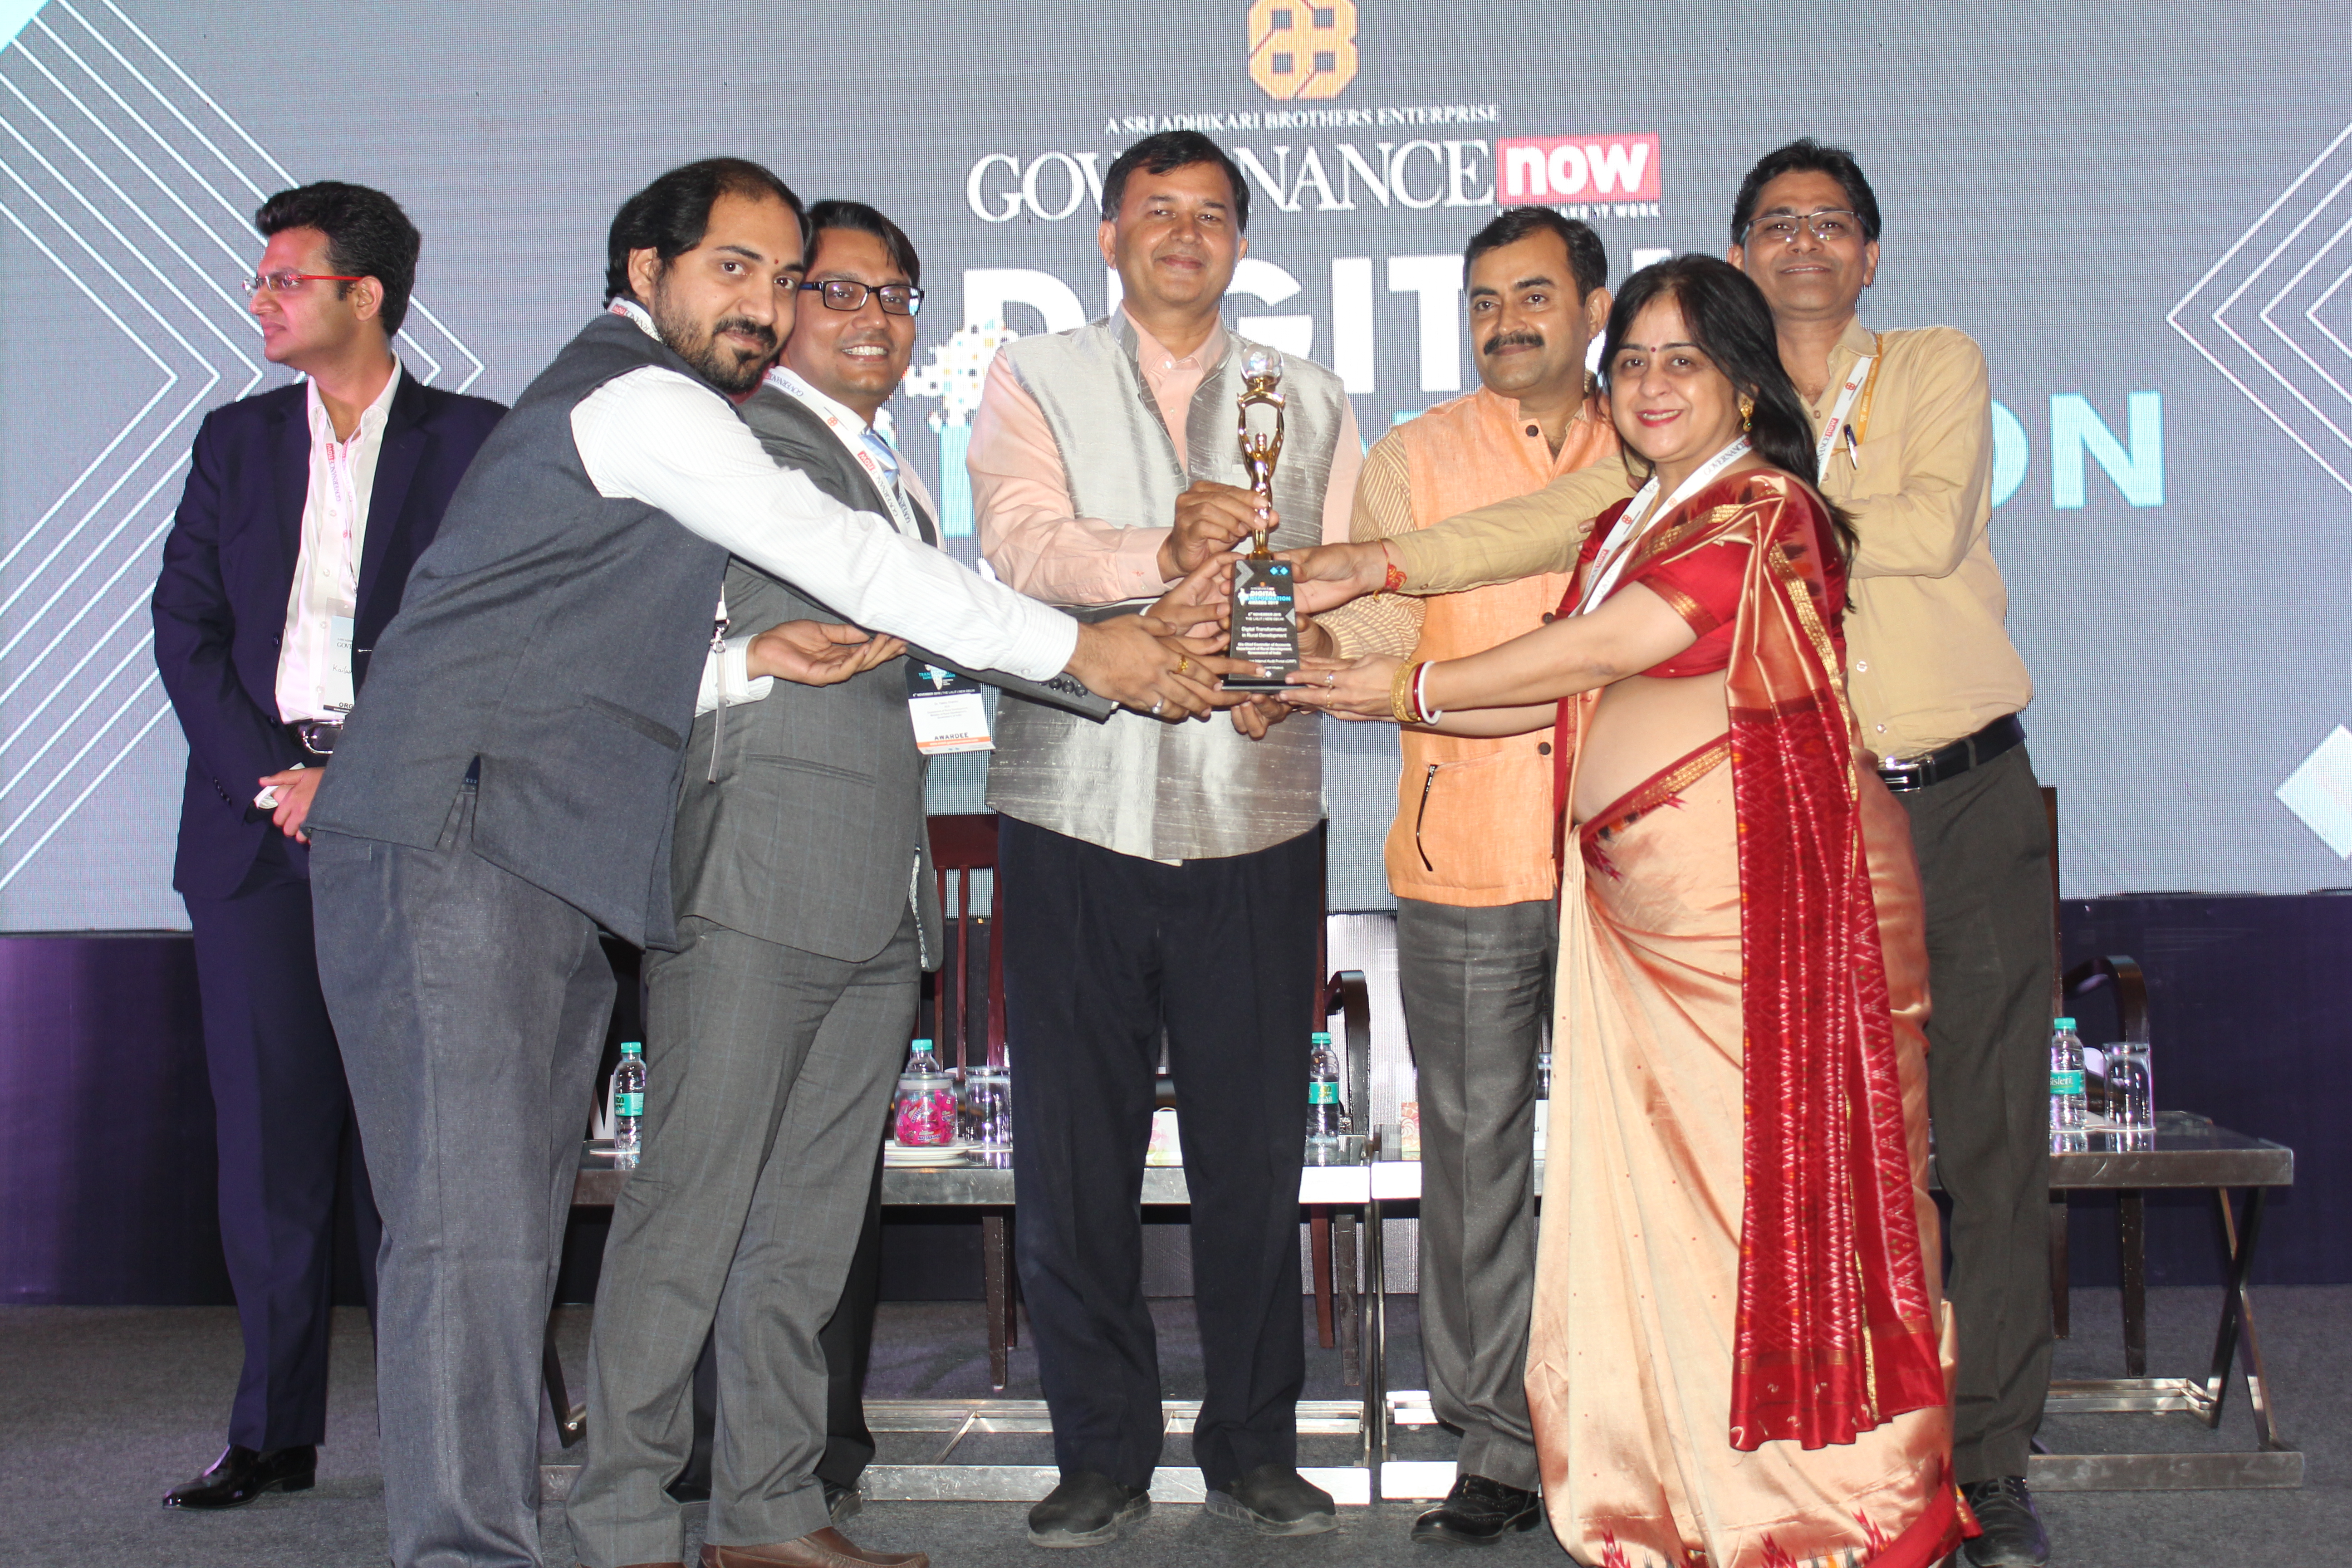 Sh. Ajay S. Sigh CCA, MoRD, PR, DWS & LR and his team receiving the award at the hands of Shri S N Tripathi, Director, Indian Institute of Public Administration